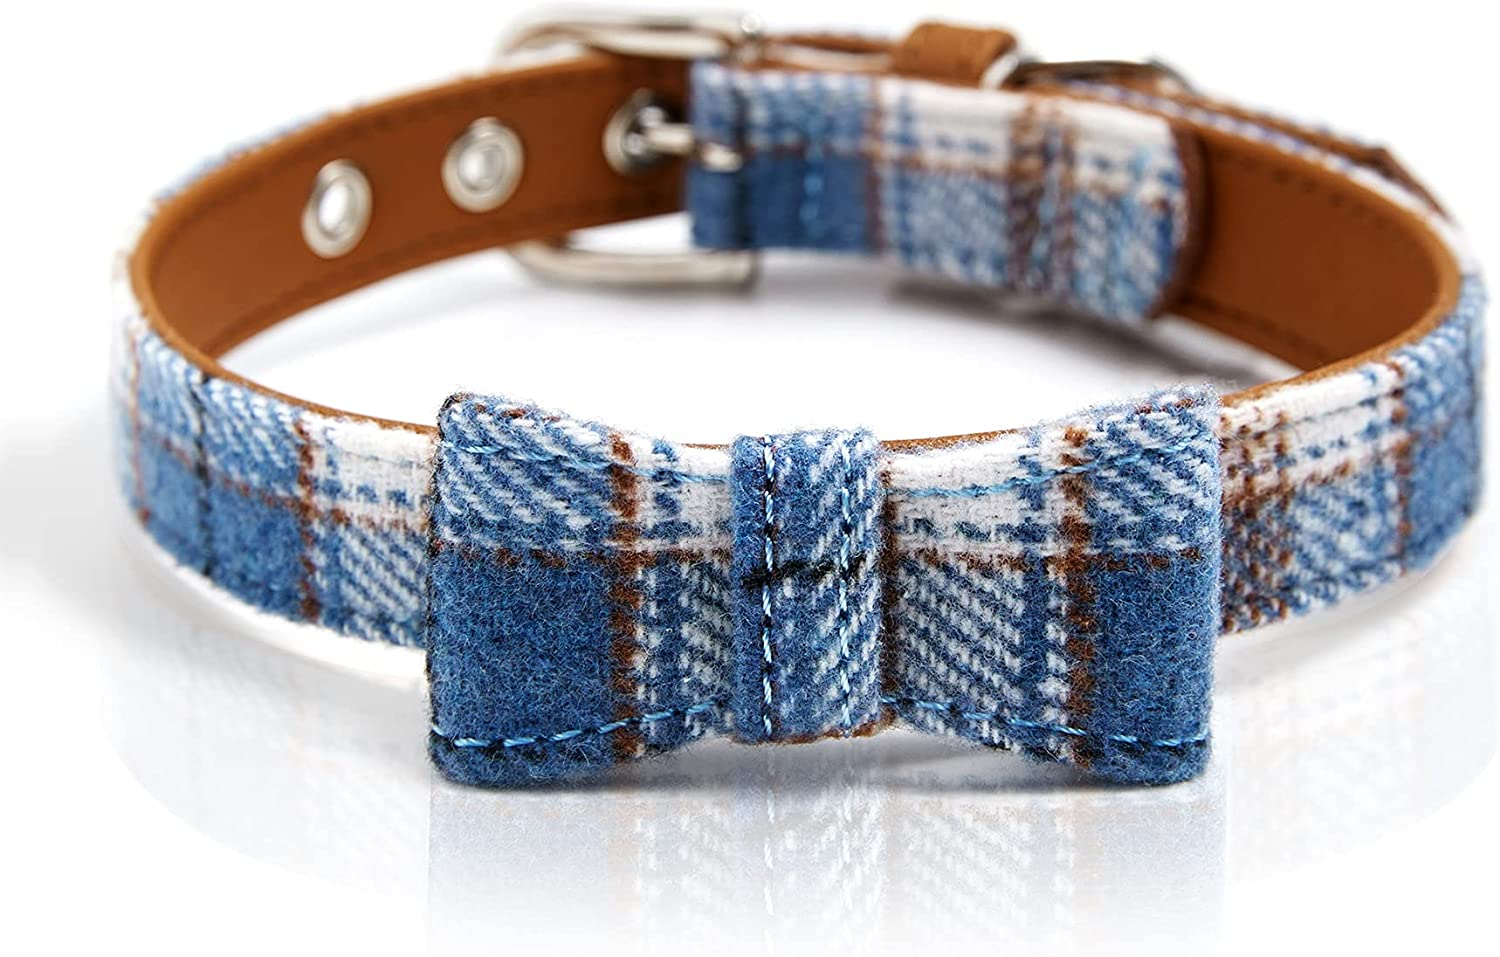 5 ☆ popular MOBA Pet Dog Collar for Small Al sold out. Bo Large Medium Dogs Plaid Classic